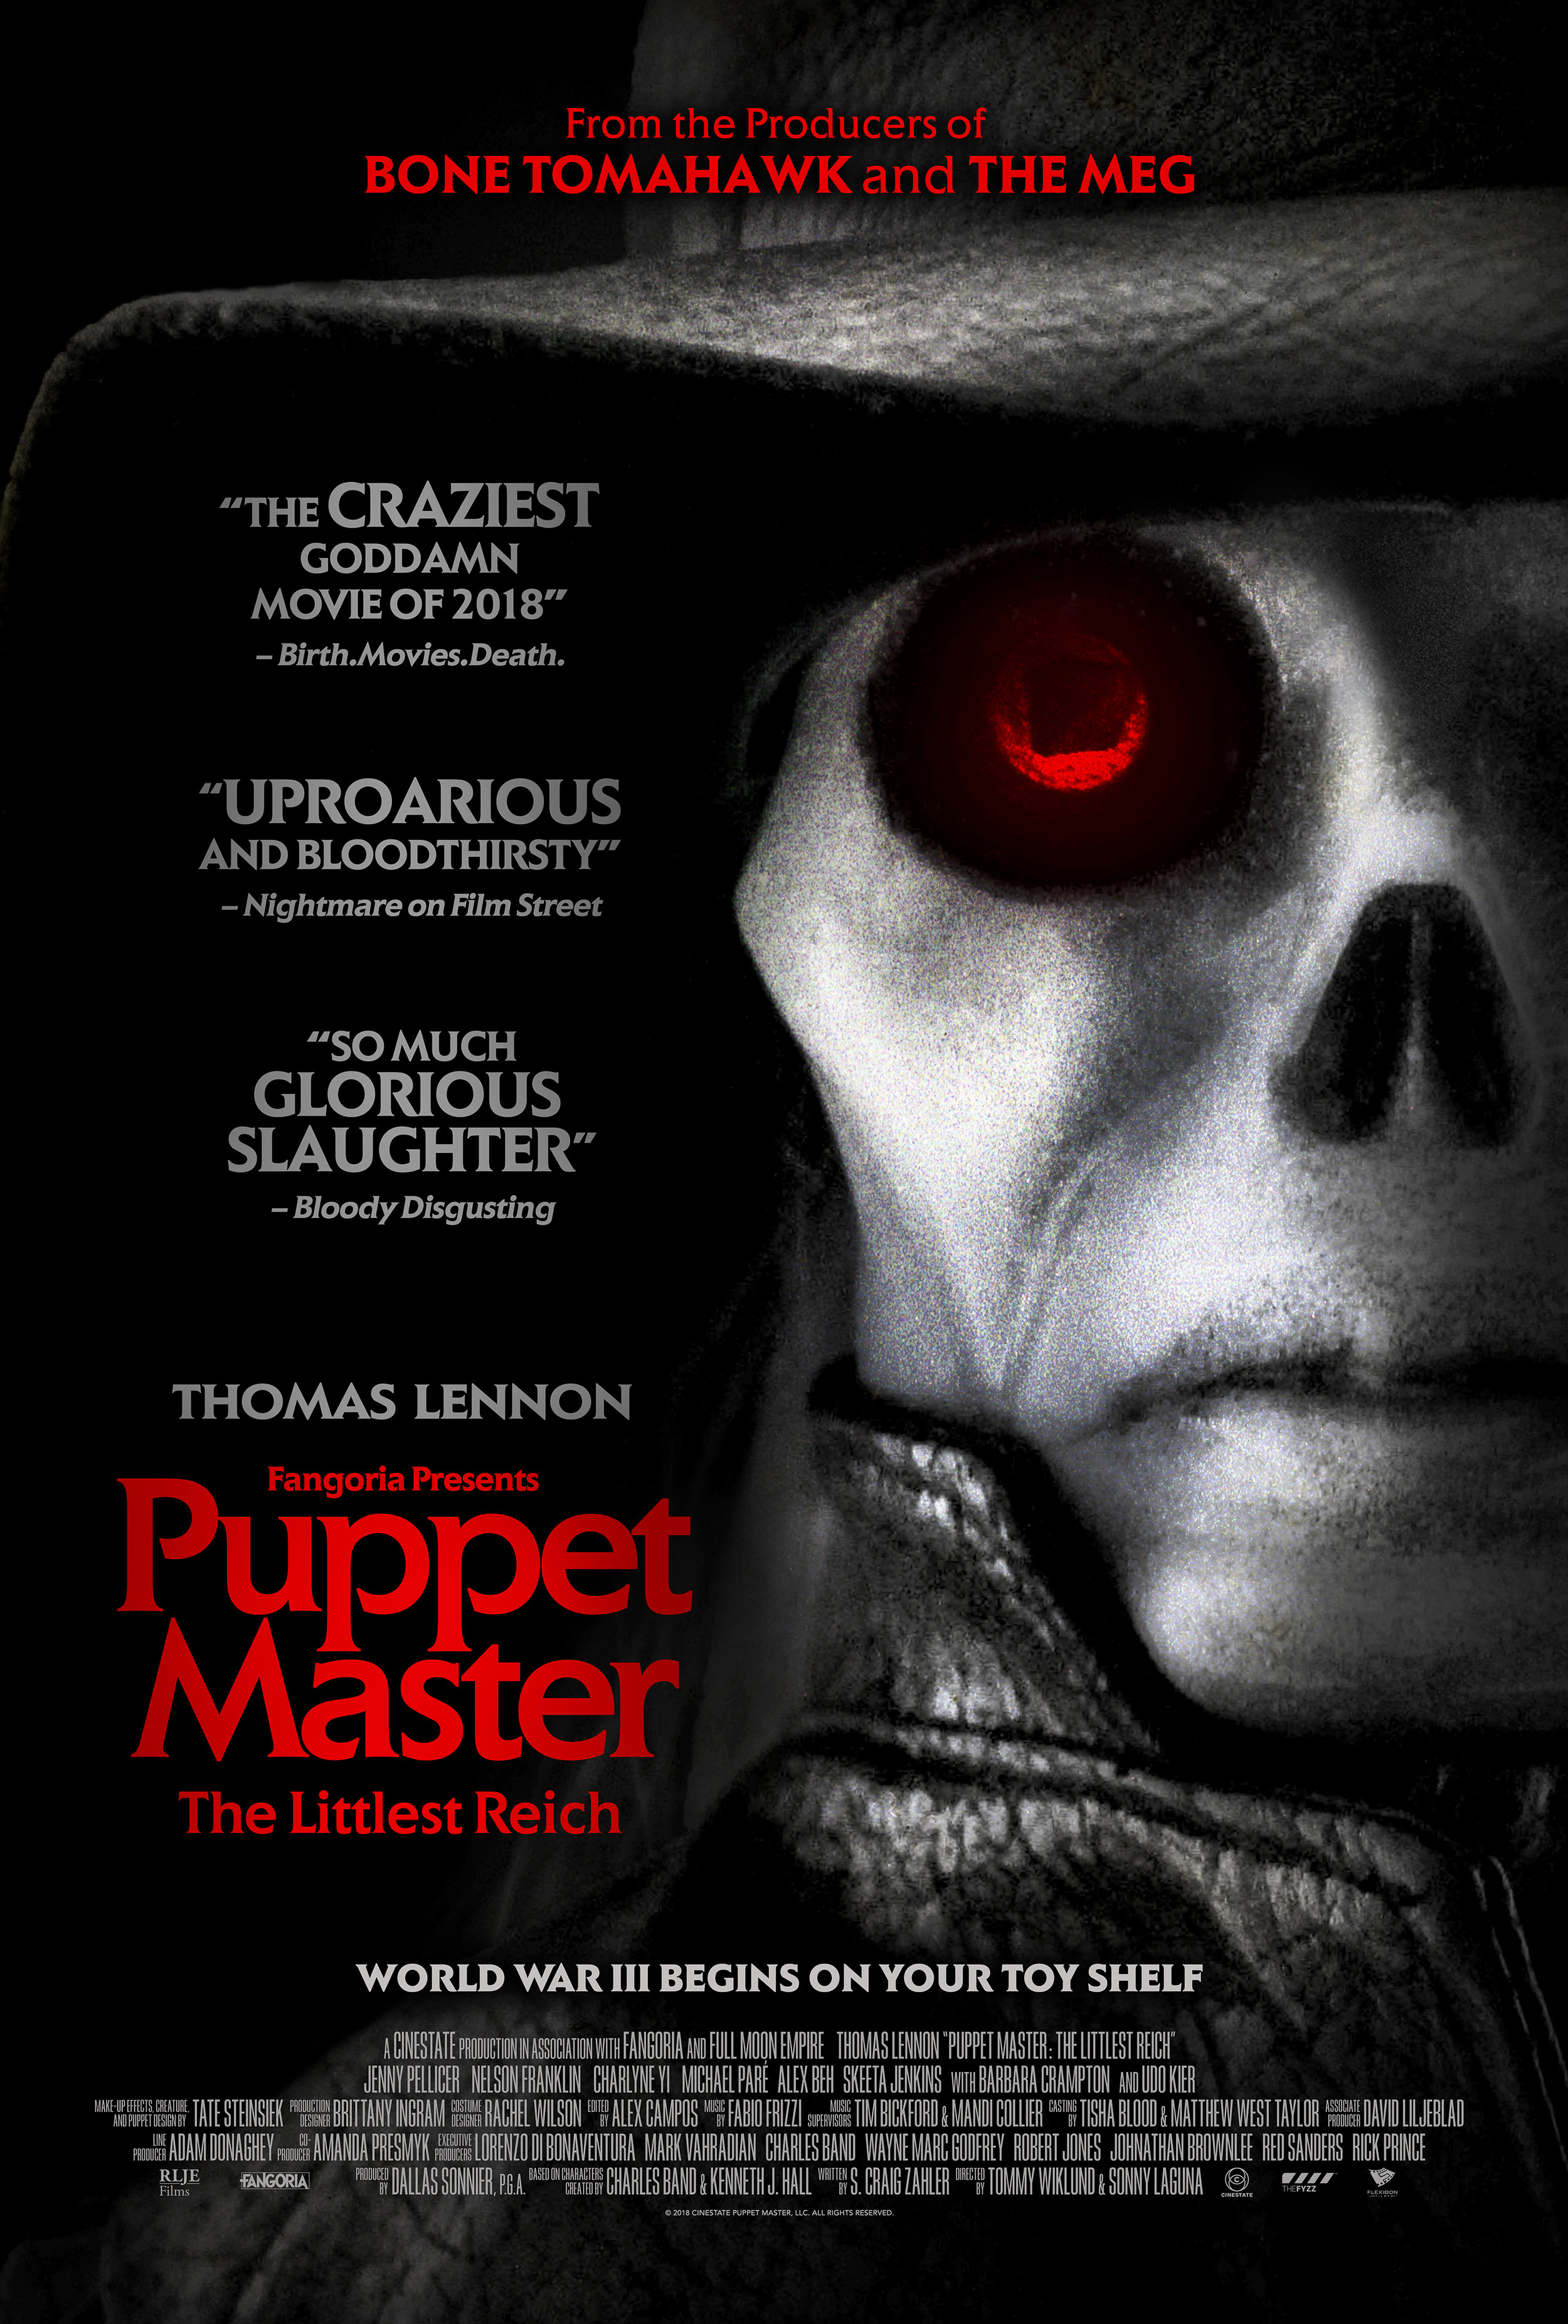 PUPPETMASTER_Poster_image_2764X4096.jpg